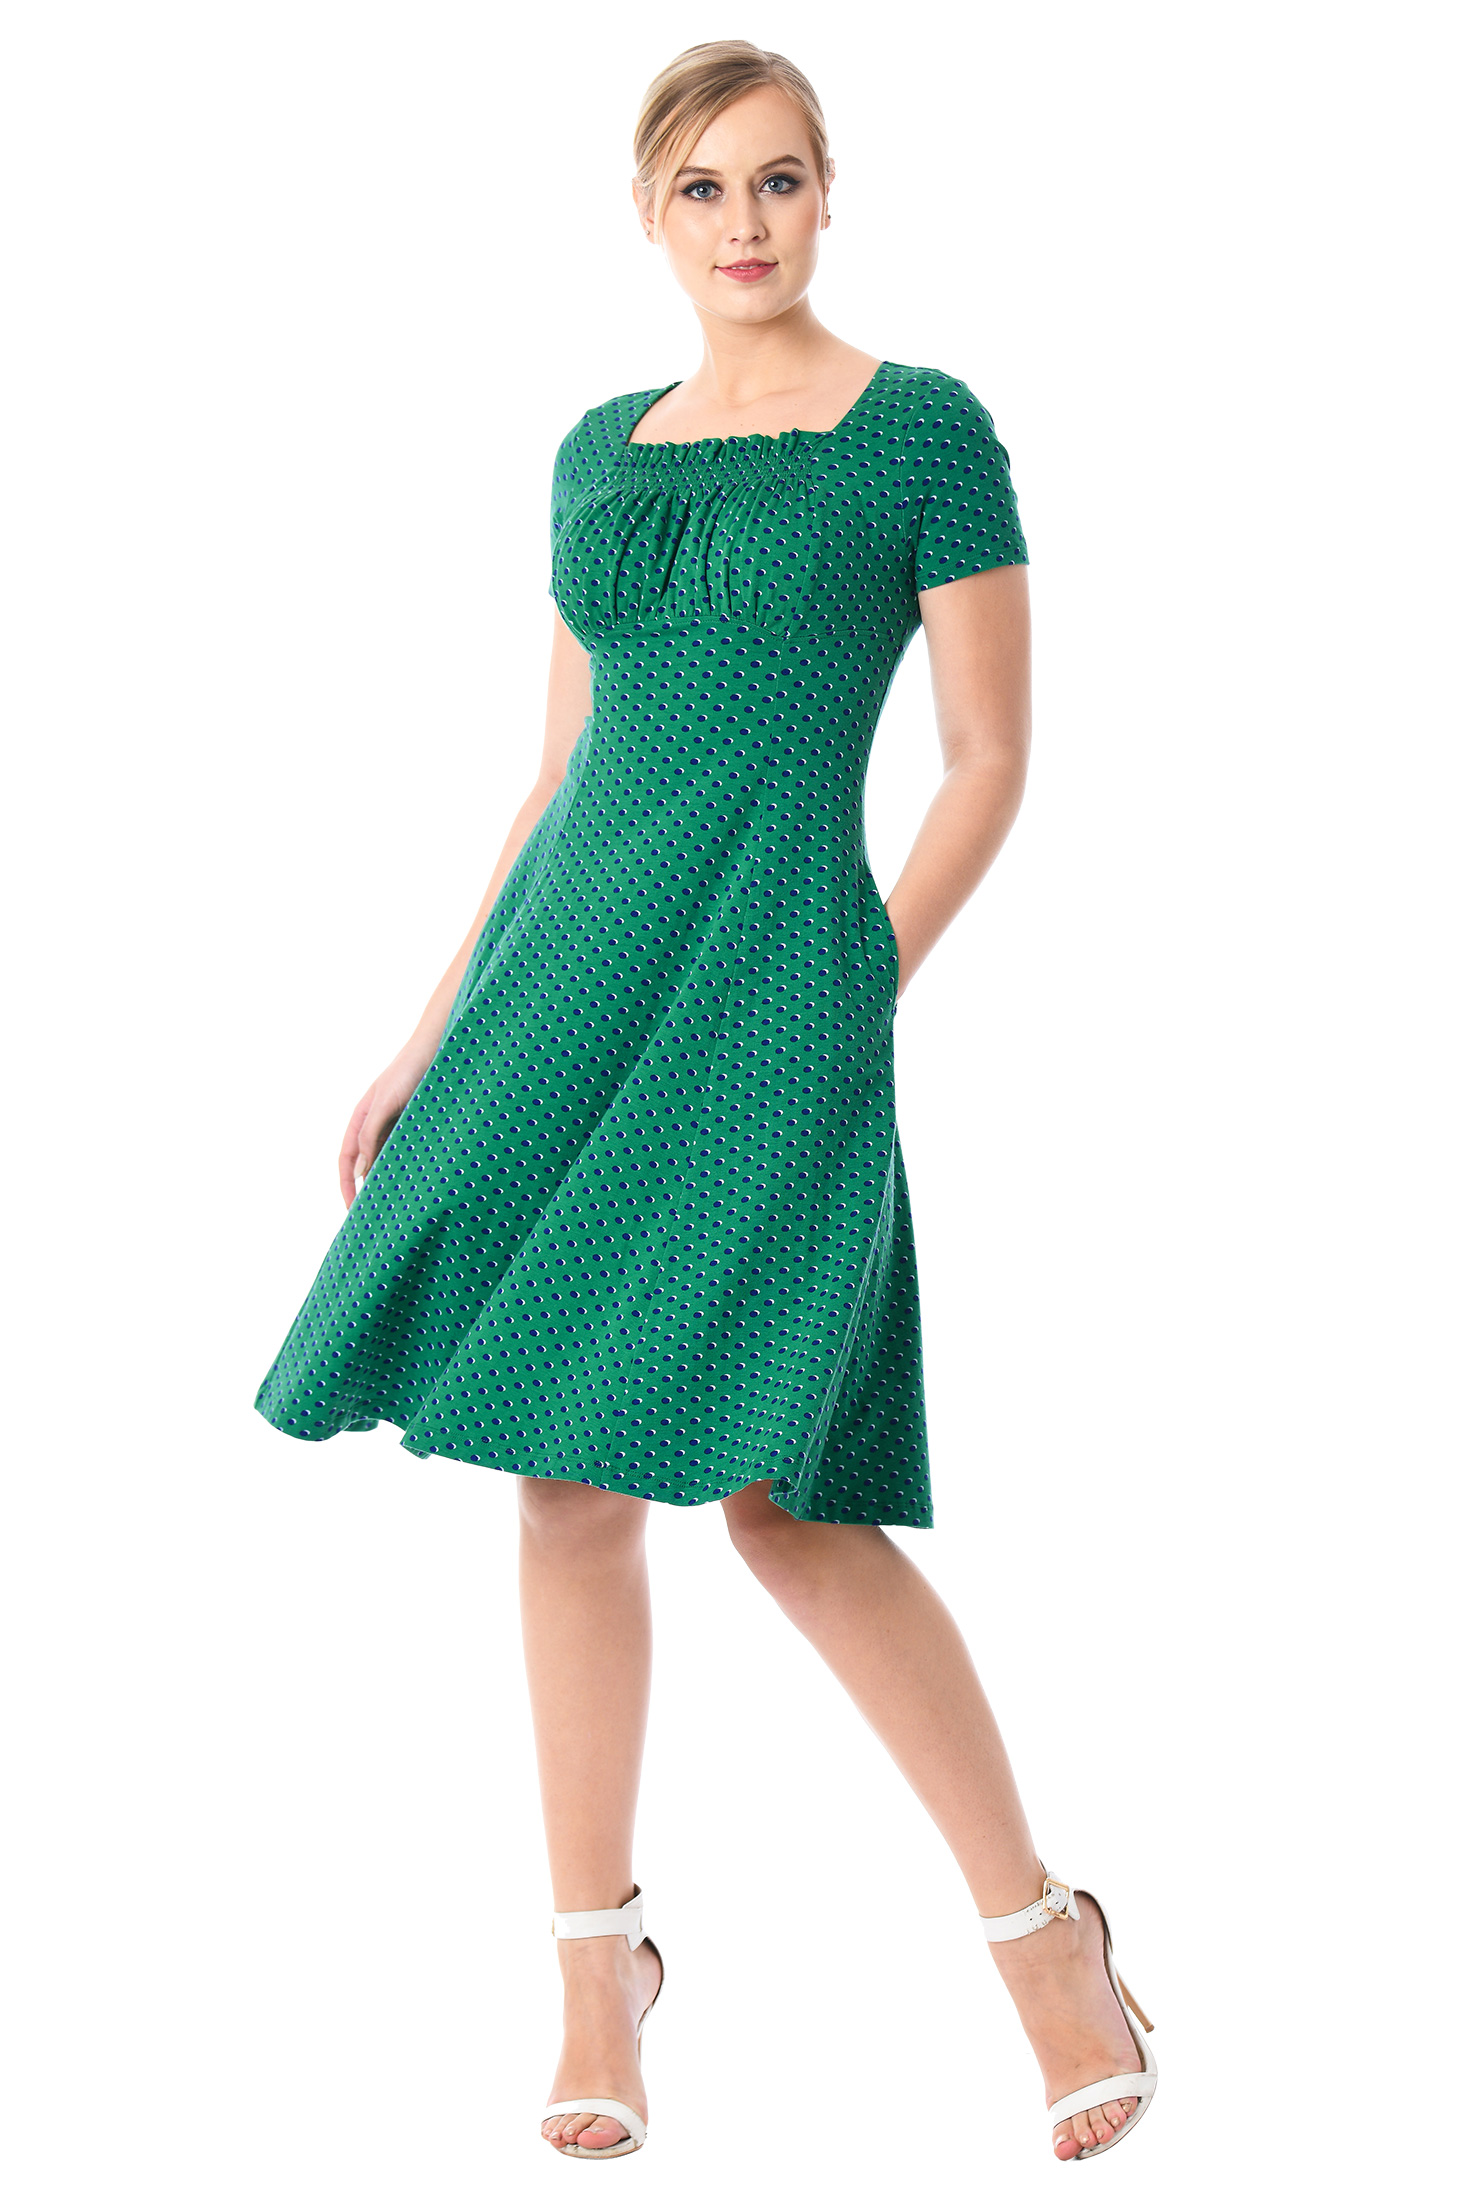 eShakti Women's Ruched bodice polka dot cotton knit dress